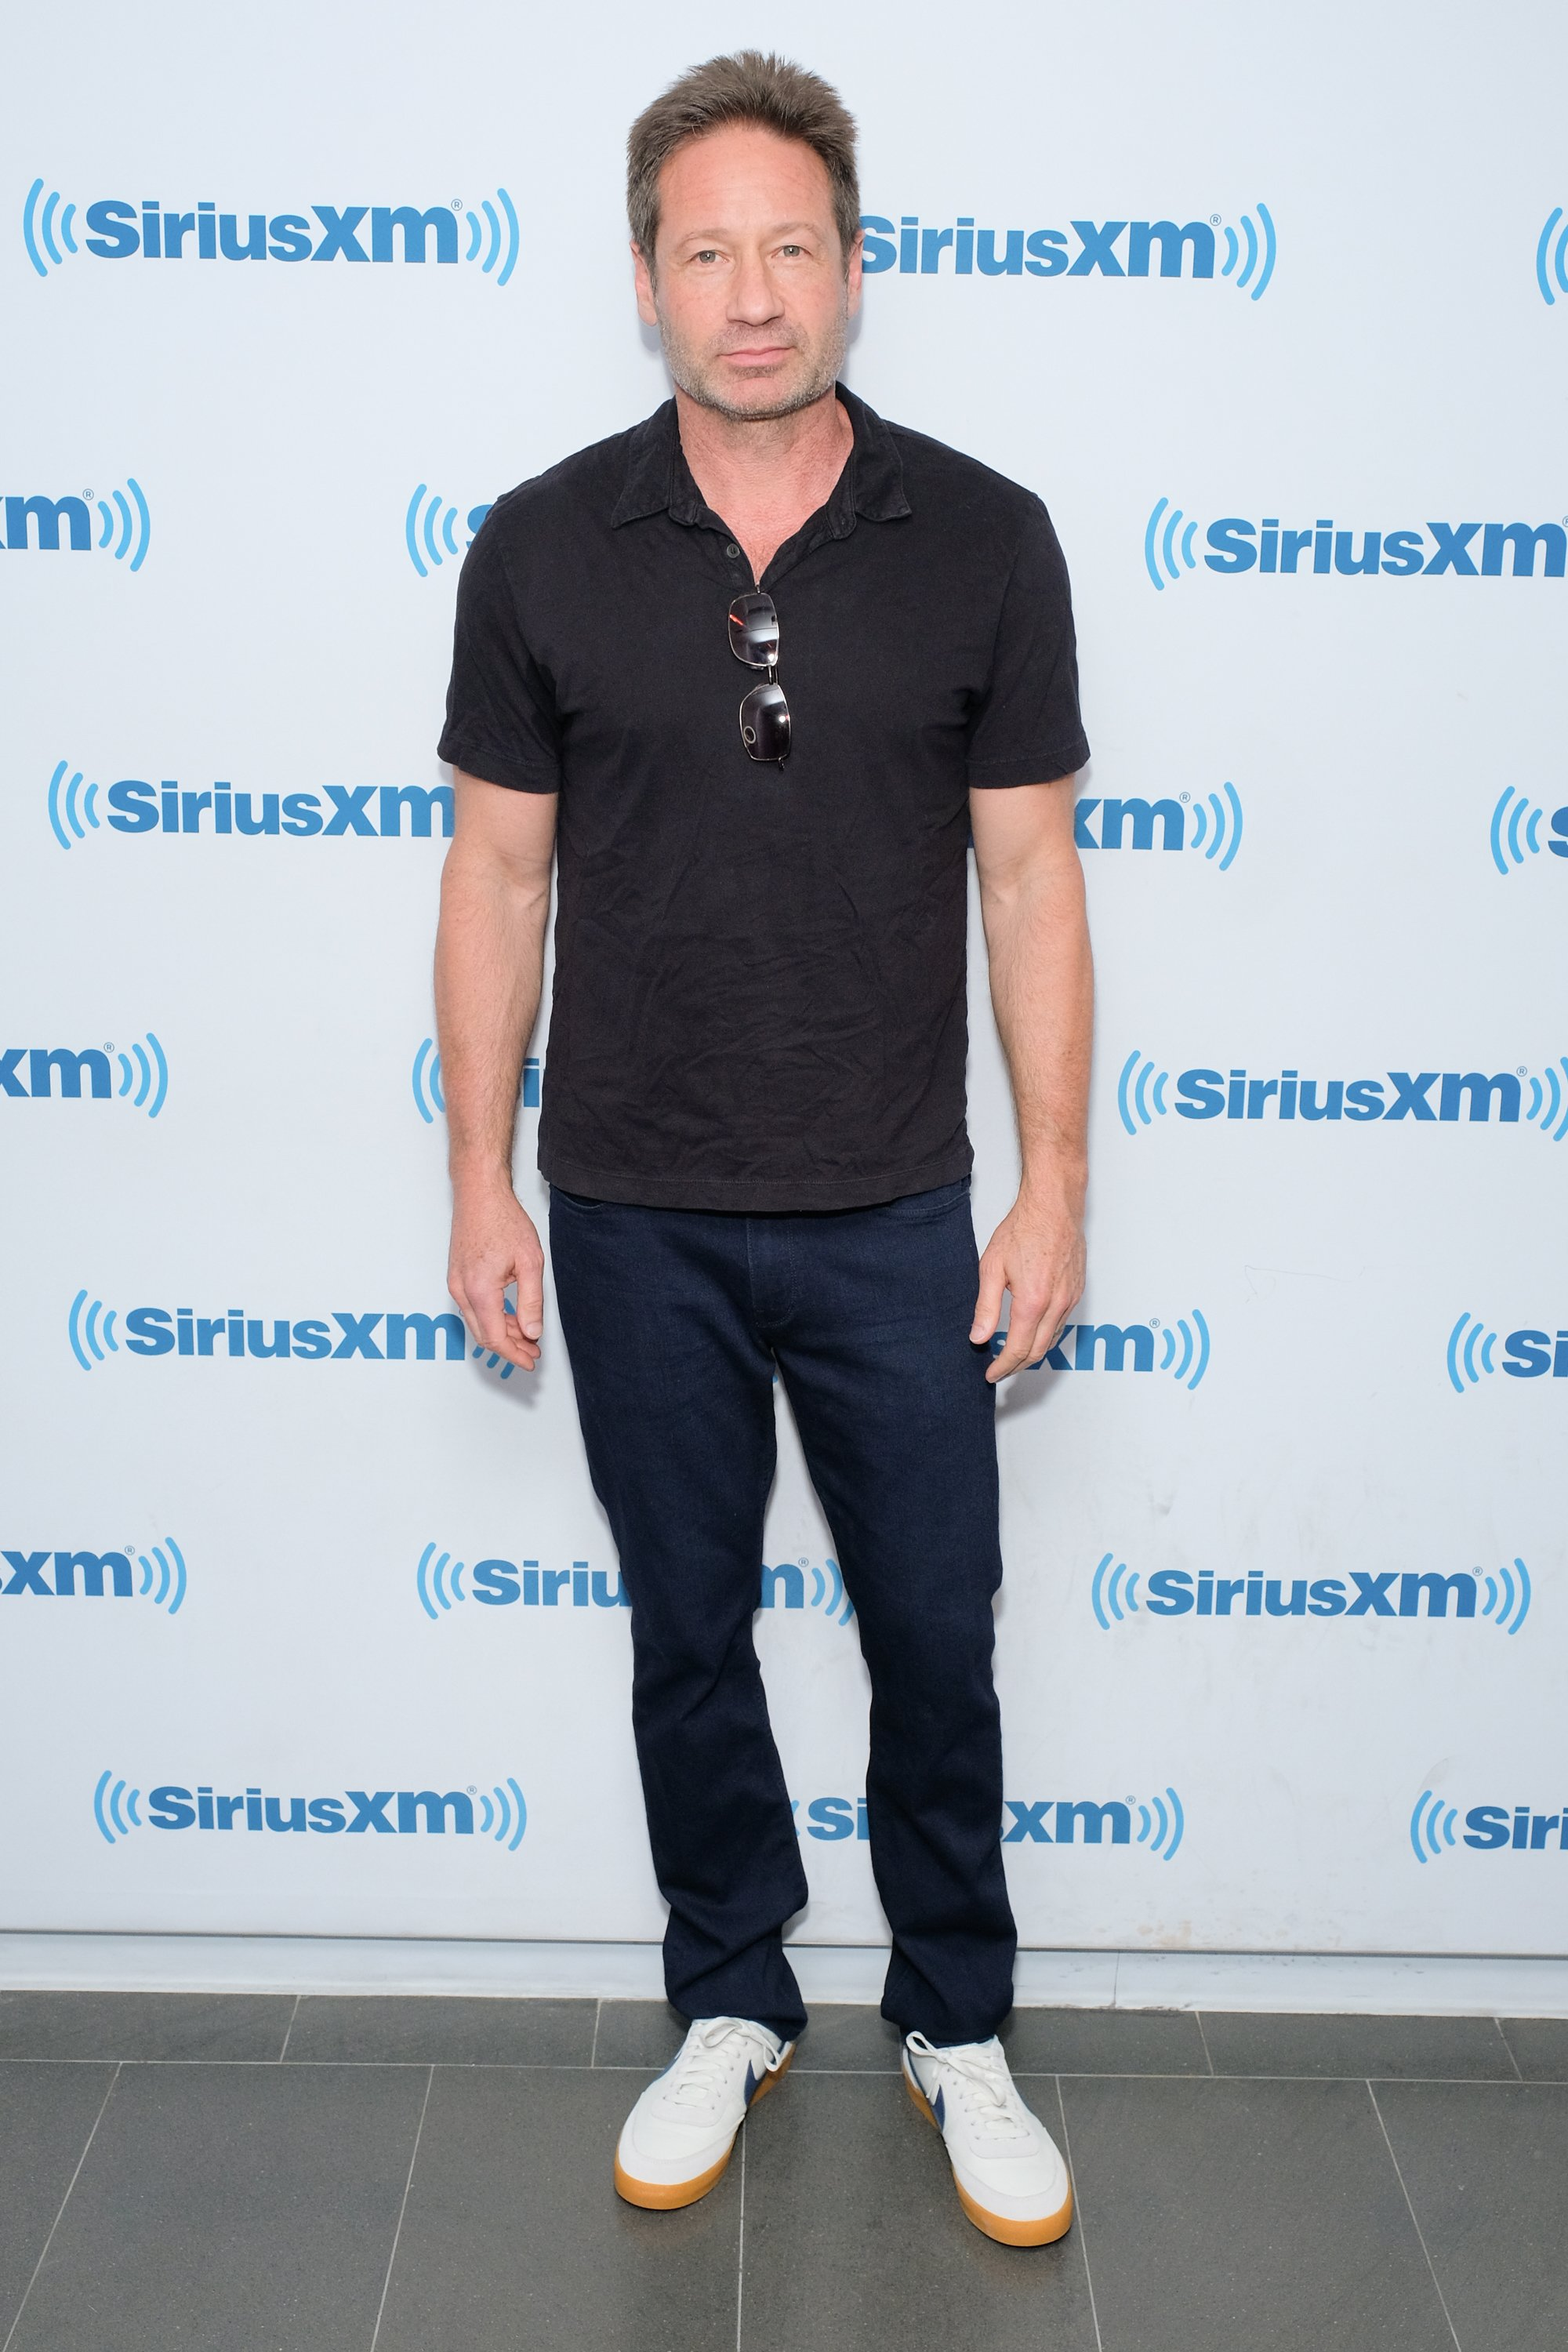 Image Credits: Getty Images / Matthew Eisman | Actor David Duchovny visits SiriusXM Studios on May 14, 2018 in New York City.